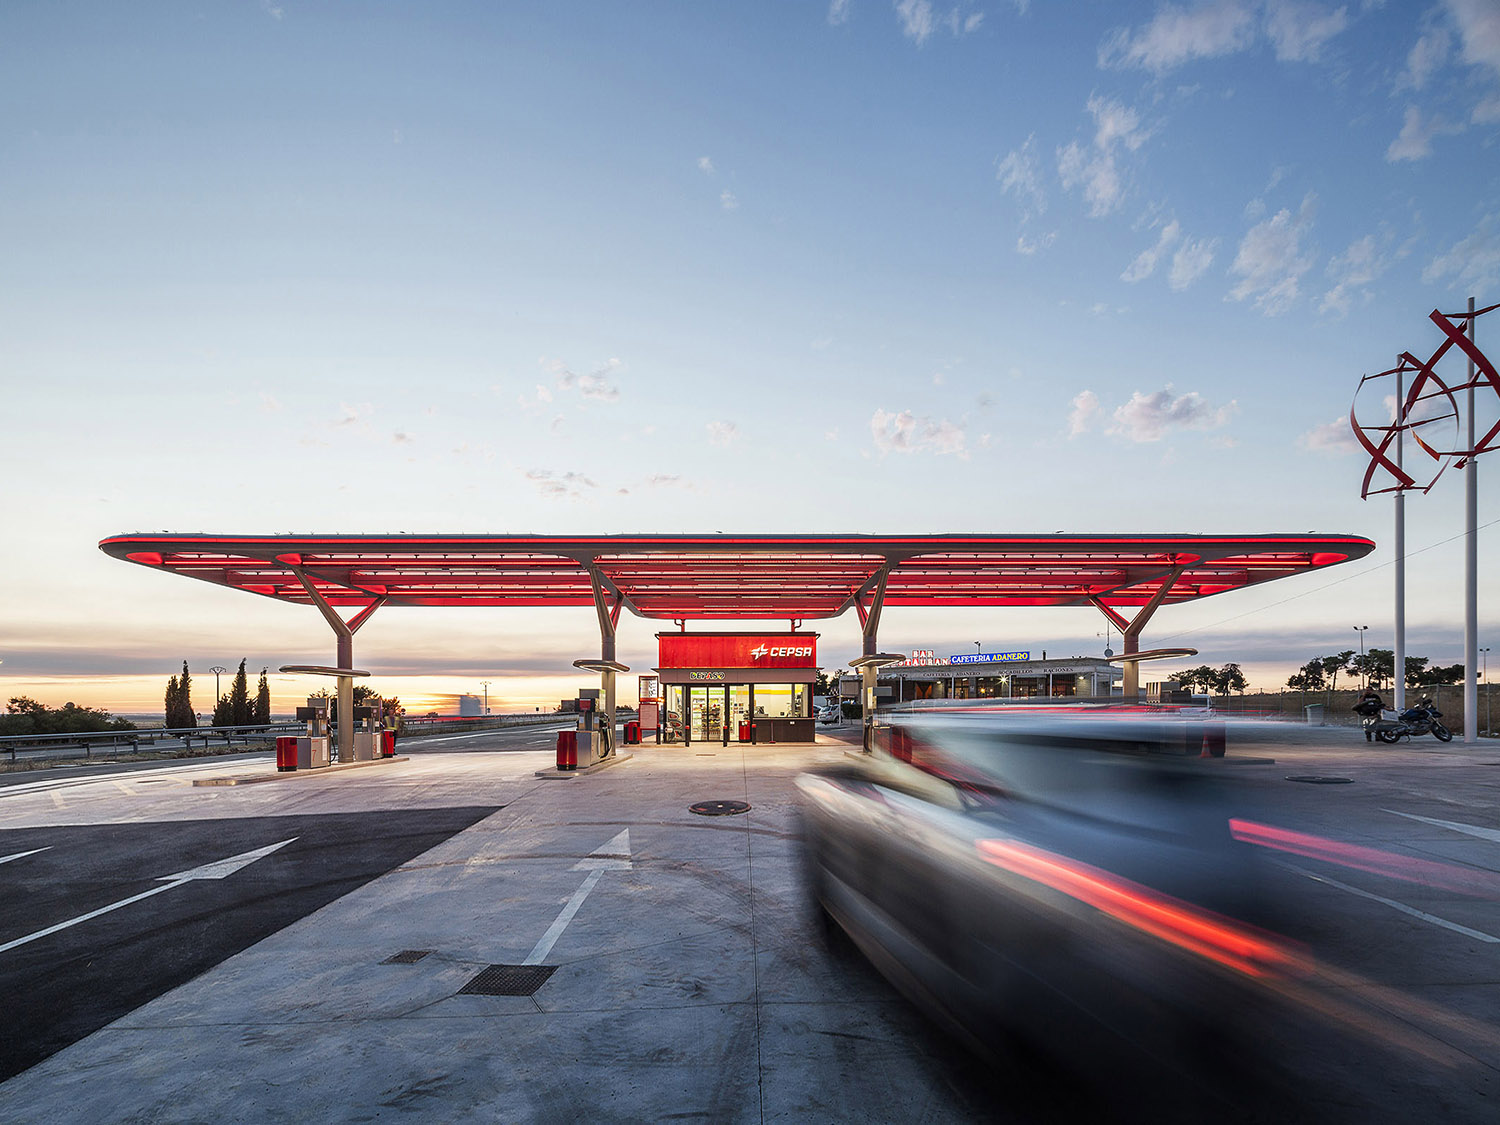 CEPSA Flagstation by M+P, Saffron Brand and Aureolighting in Ávila, Spain